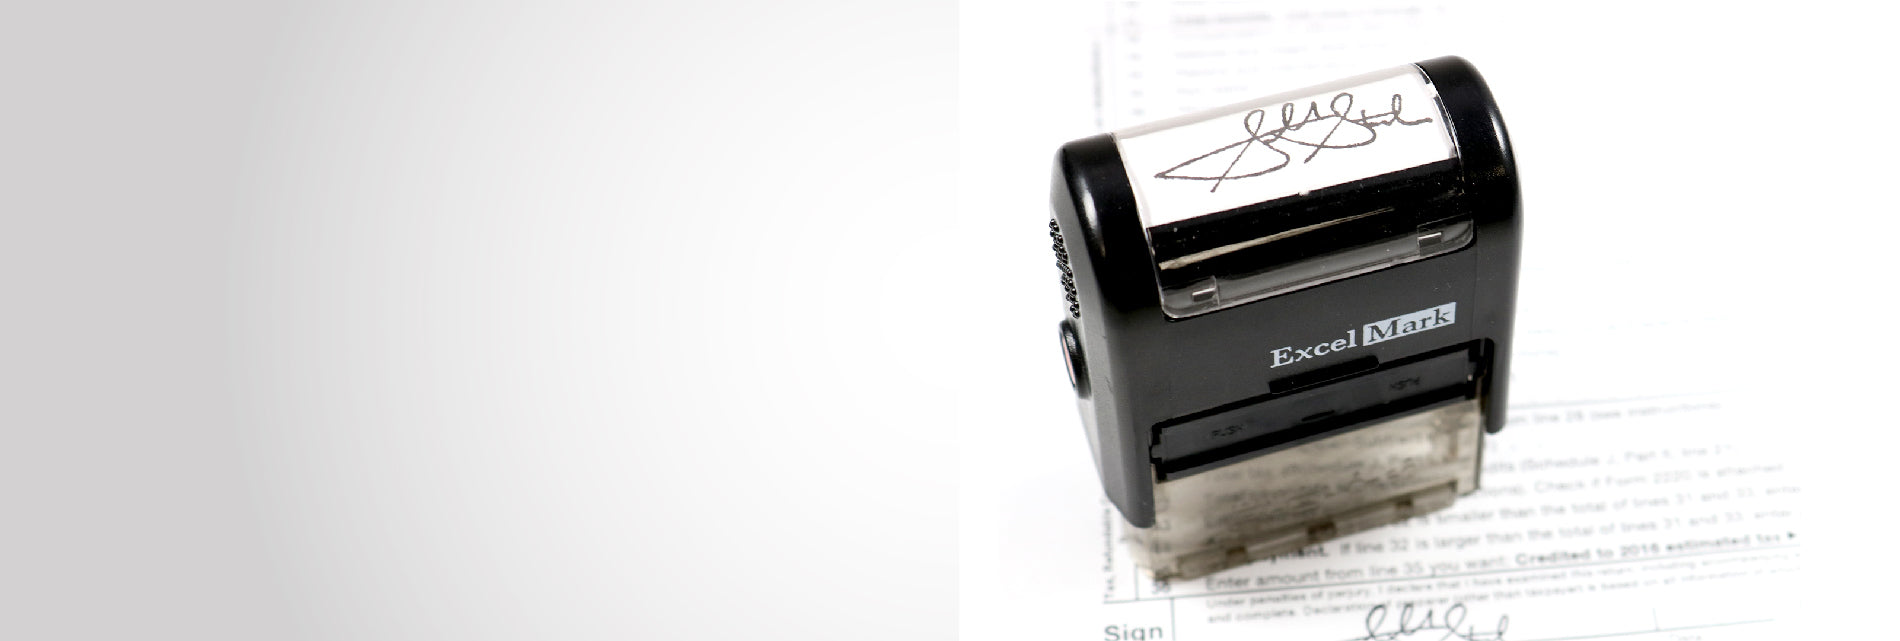 discounted rubber stamps and accessories at discountrubberstamps com